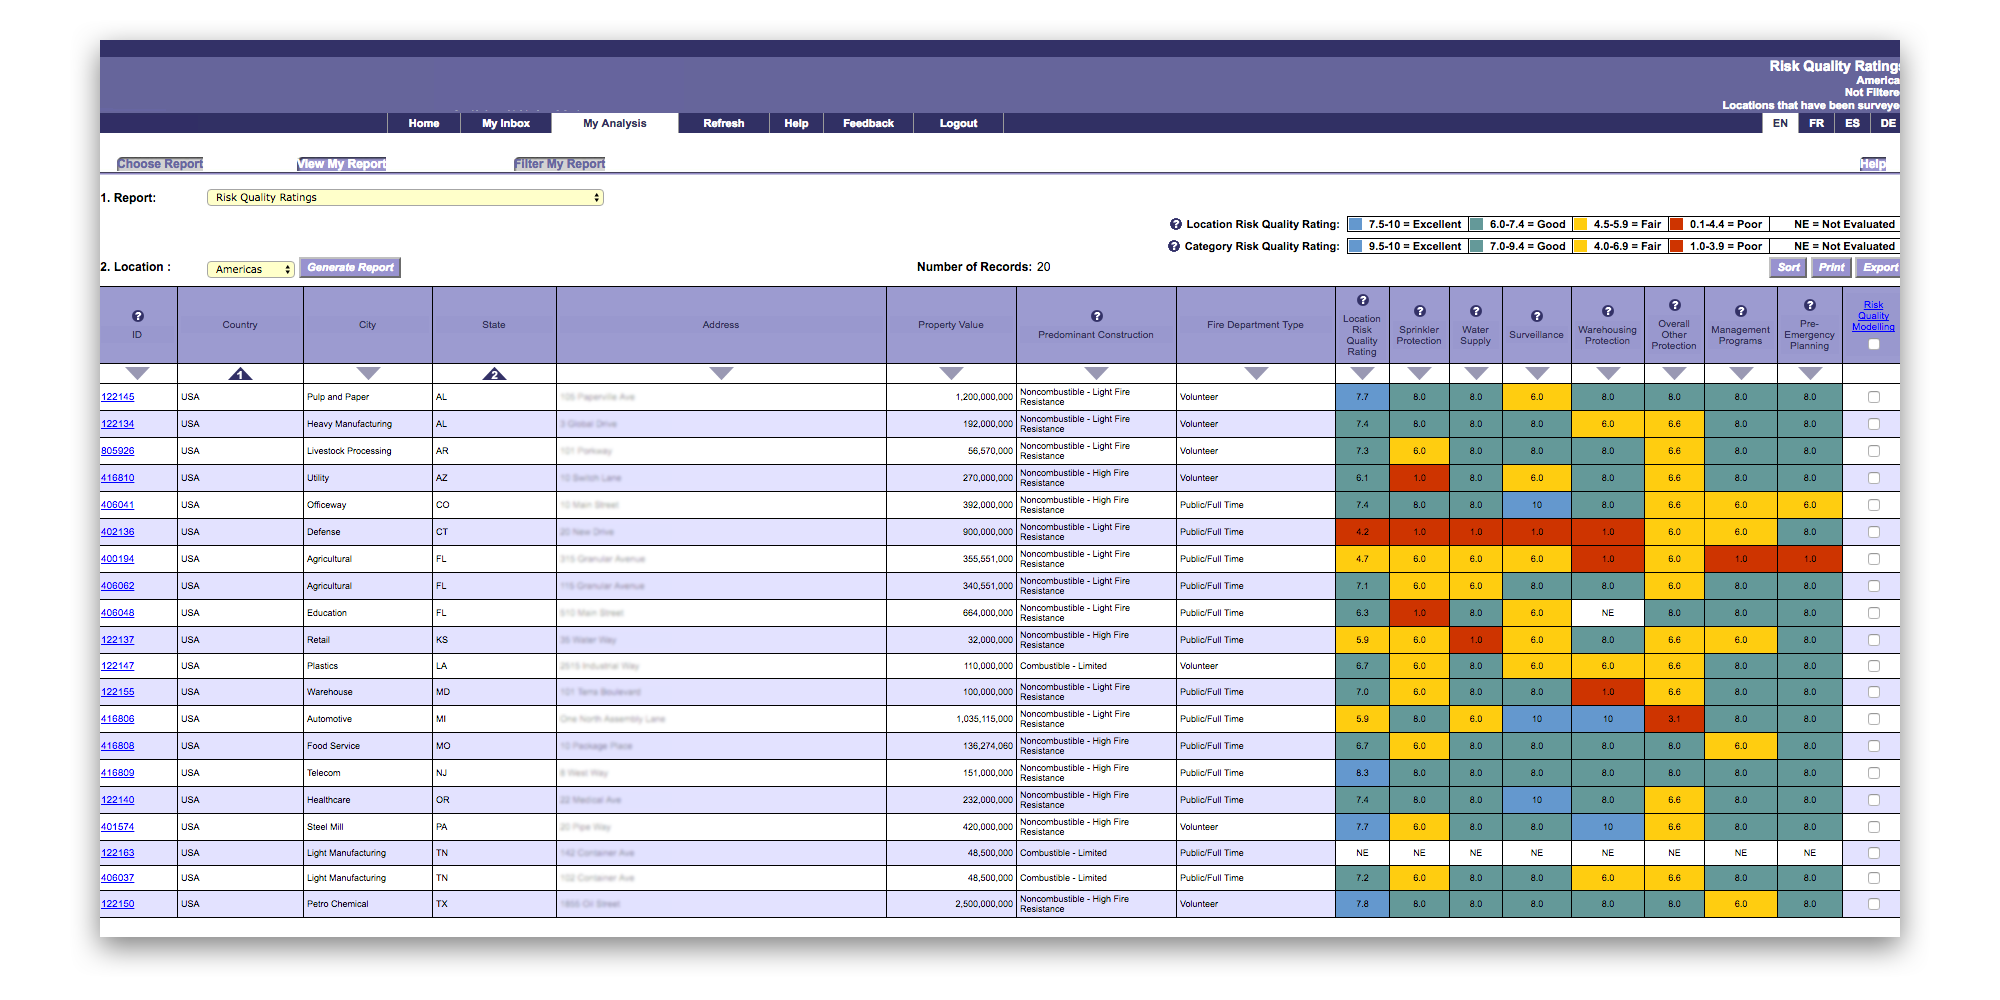 This is the large and complex risk assessment table, featuring colored columns showing the score-based system.